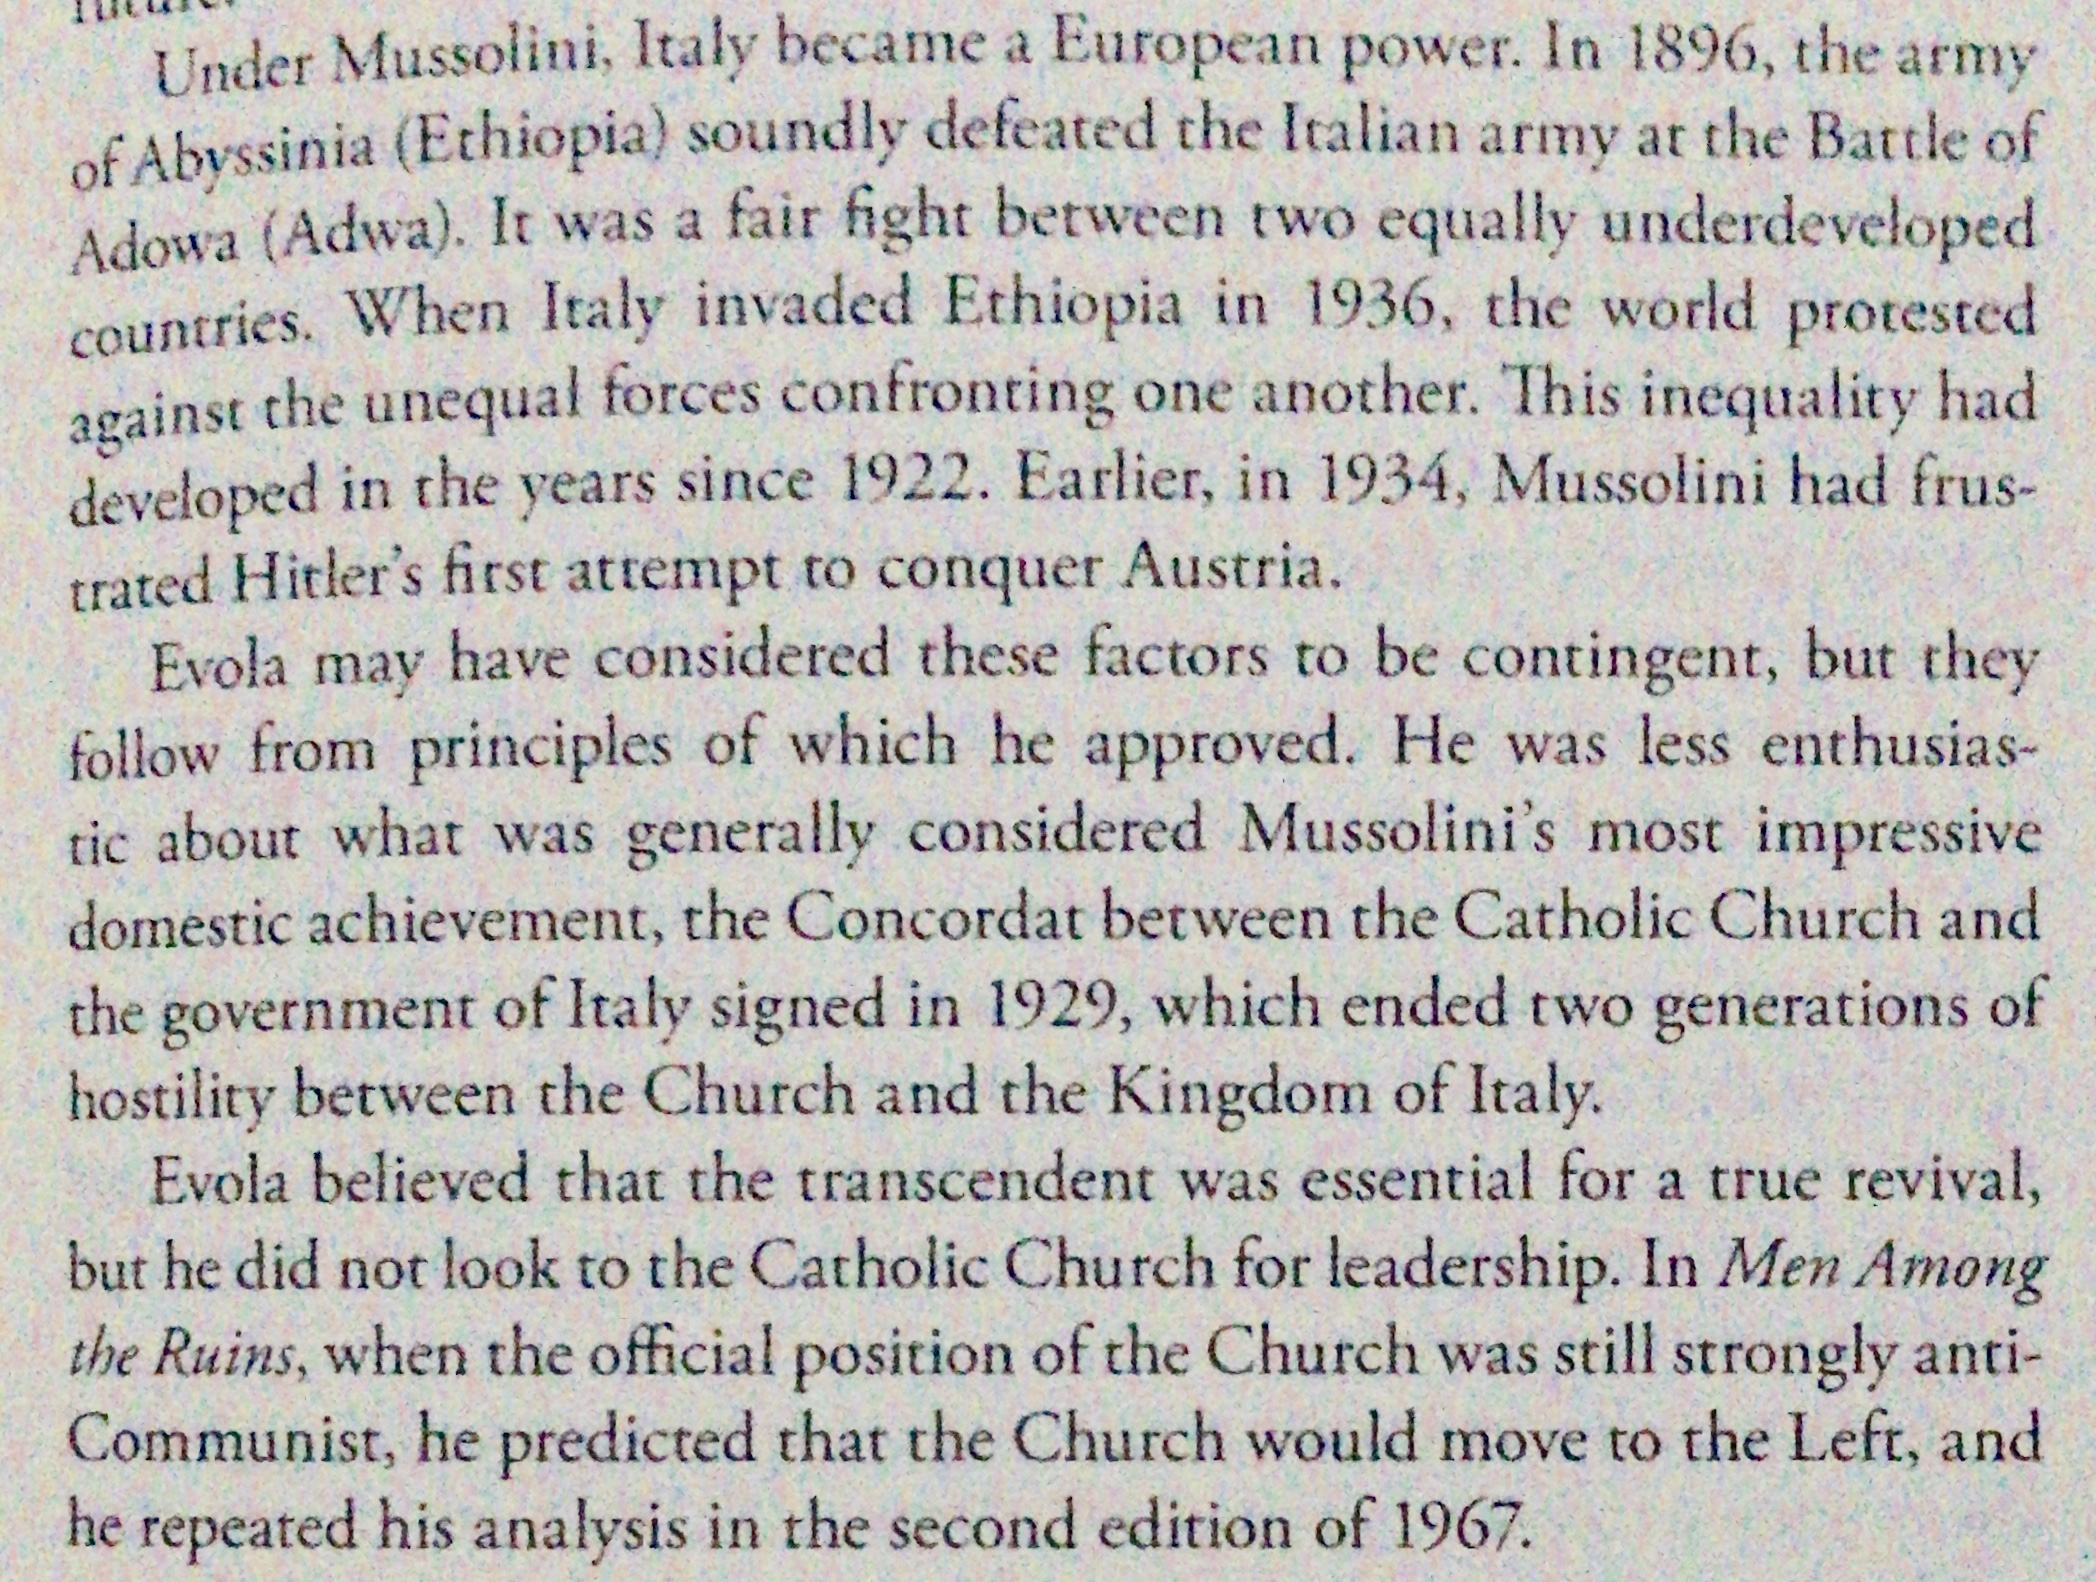 fascism in italy into world power.jpg